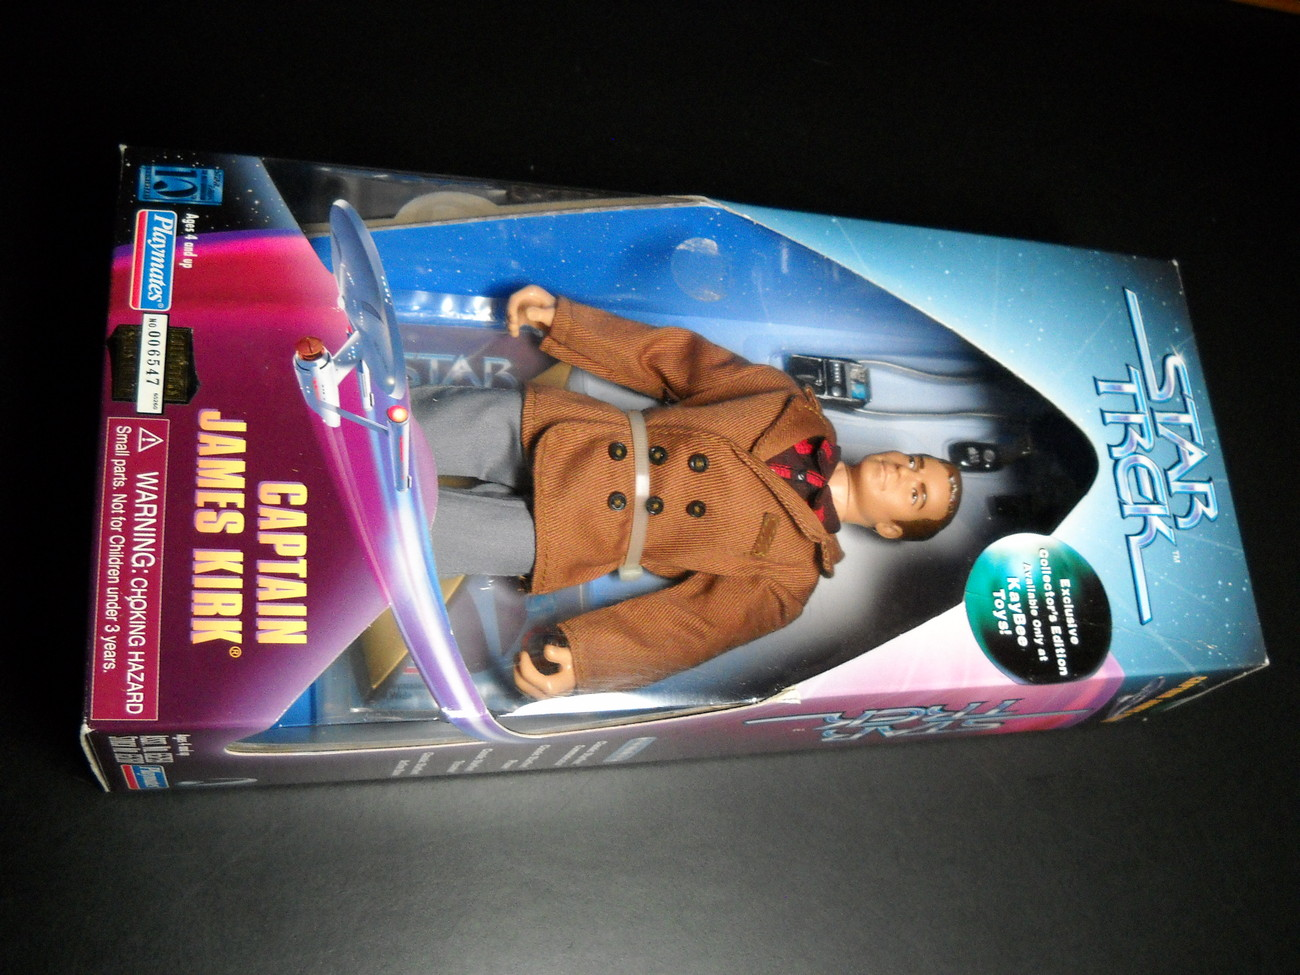 Toy star trek playmates kaybee toy exclusive captain james t kirk coteof 1997 9 inch boxed sealed 01